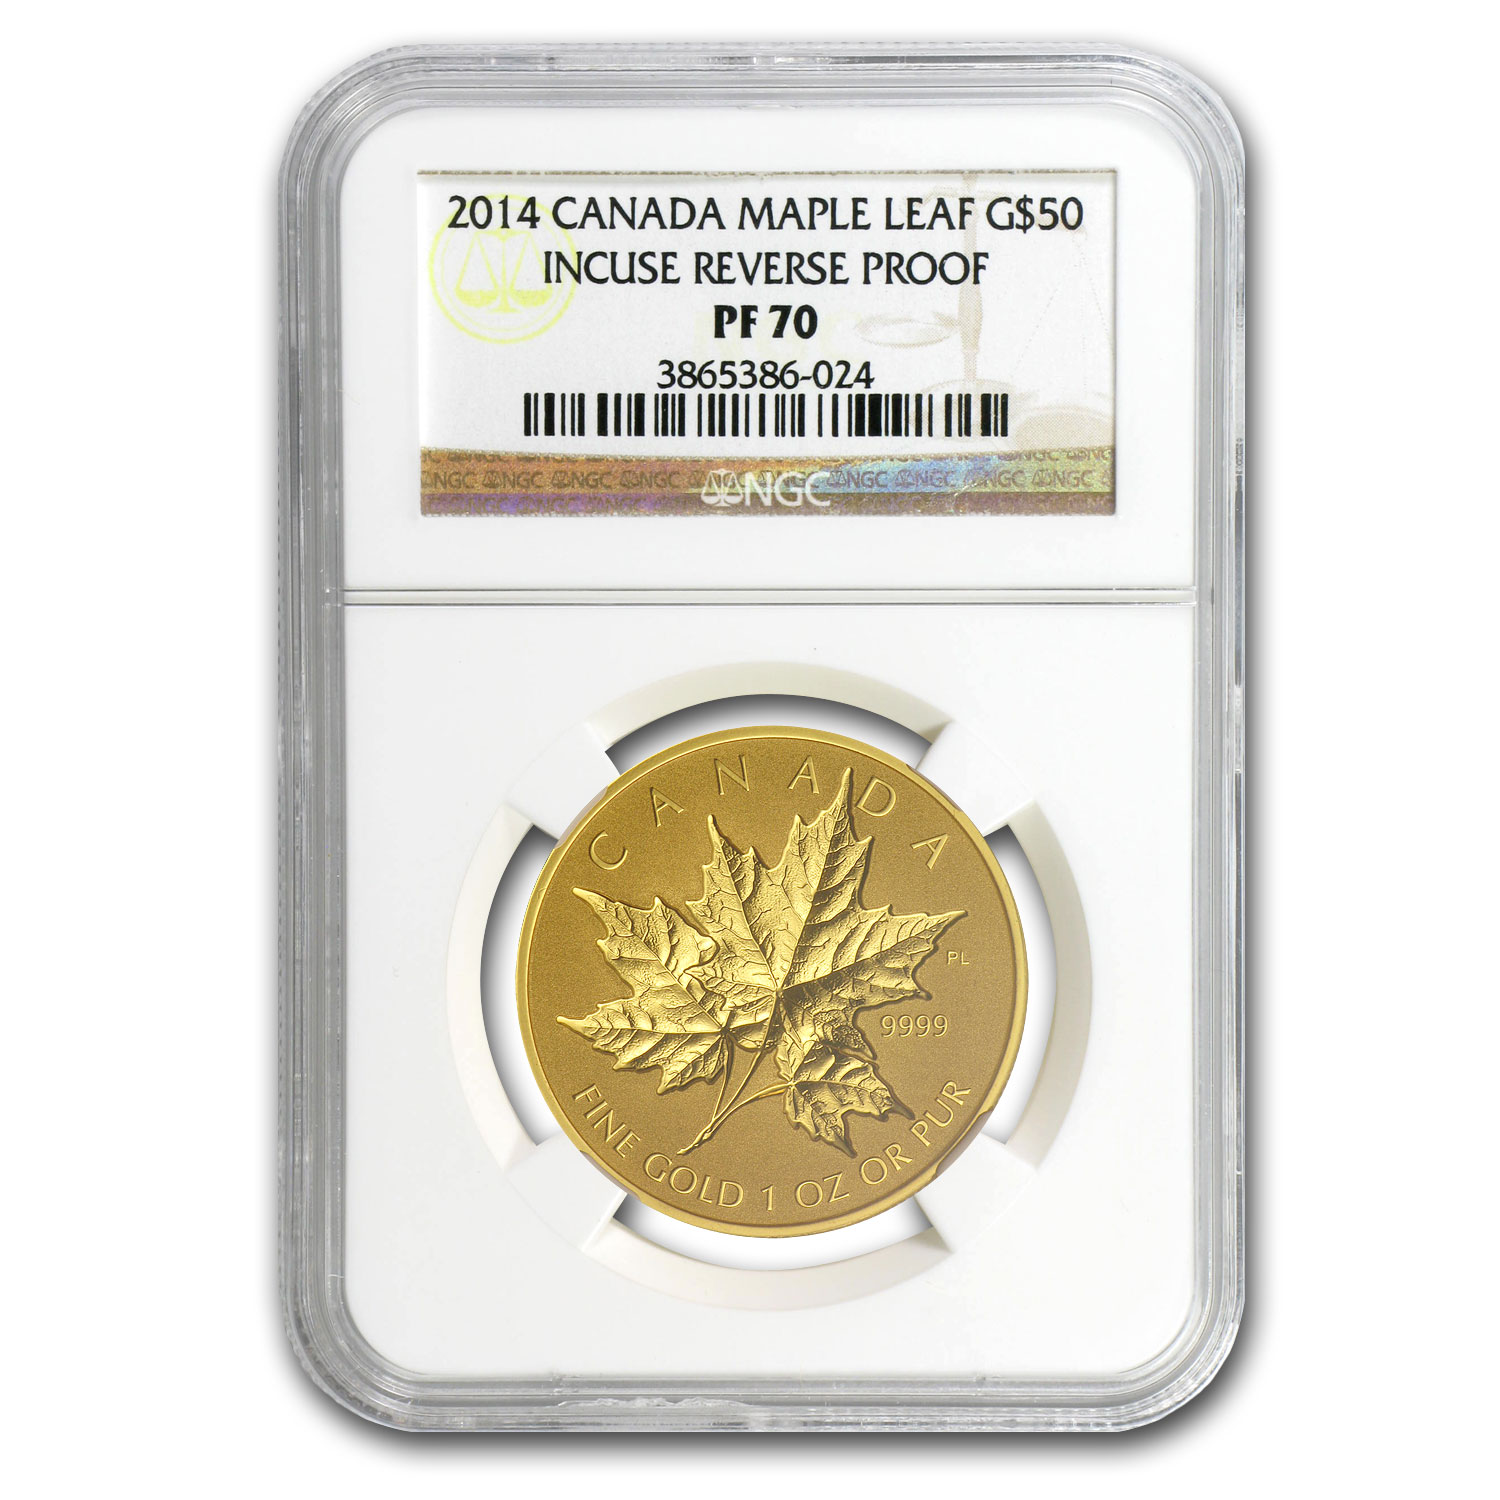 2014 Canada 1 oz Reverse Proof Gold Maple Leaf PF-70 NGC